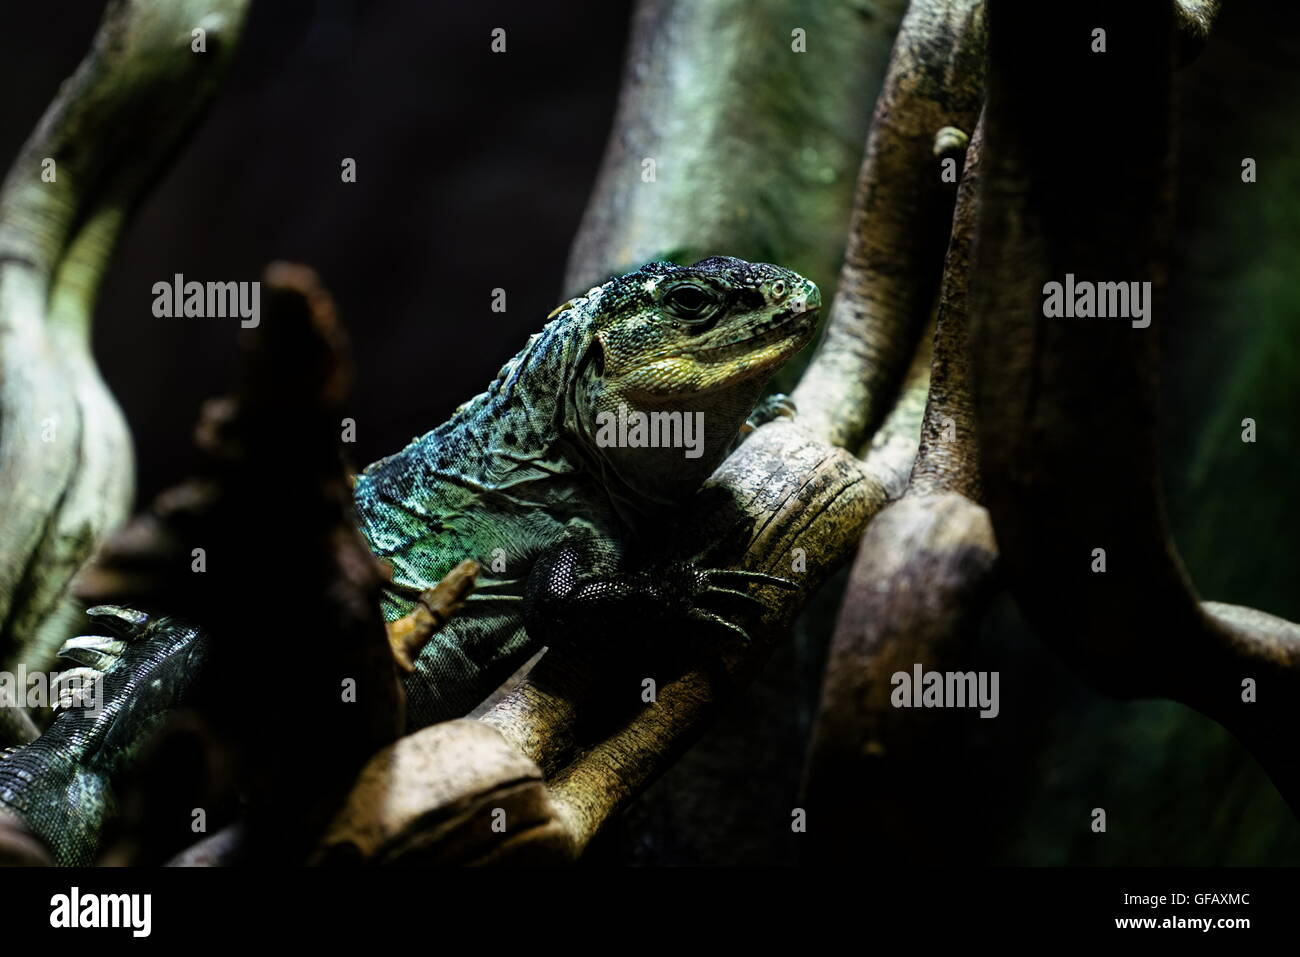 London, UK. 30th July, 2016. A Iguana at ZLS London Zoo an opening day for Little Creatures Family Festival ,England, - Stock Image